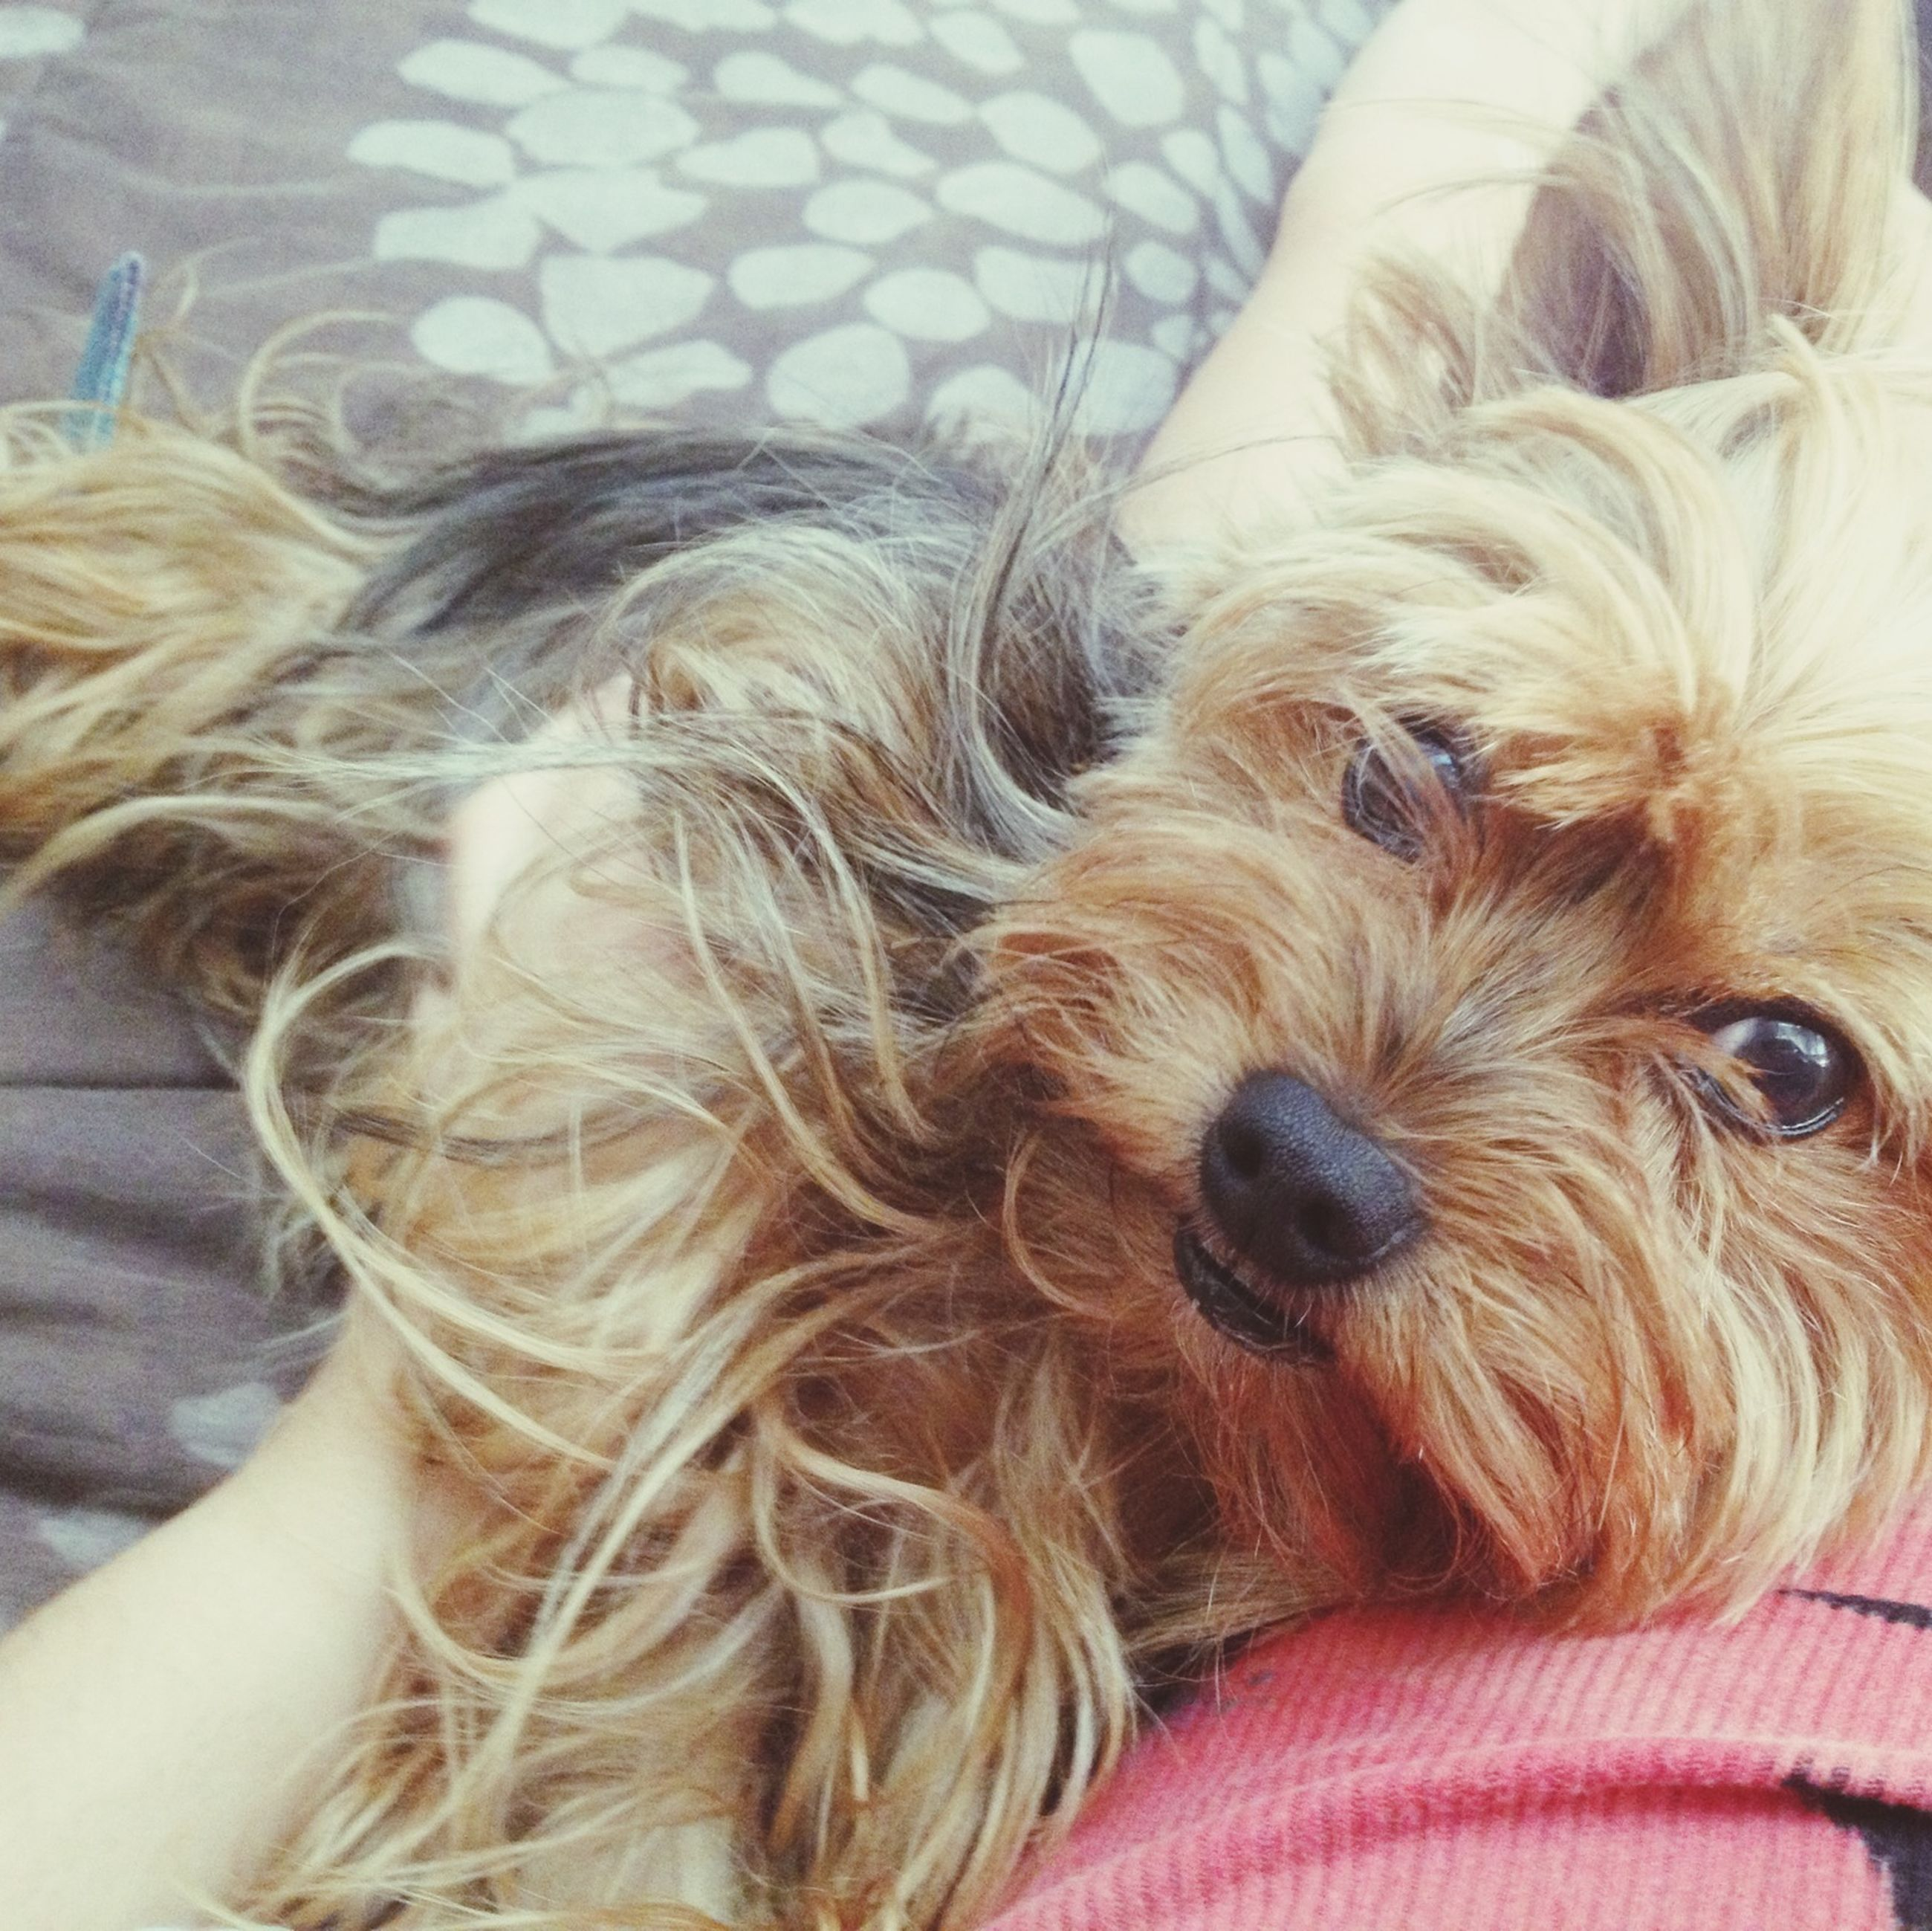 domestic animals, pets, dog, indoors, mammal, one animal, animal themes, animal hair, close-up, relaxation, resting, high angle view, lying down, home interior, part of, animal head, bed, animal body part, no people, cropped